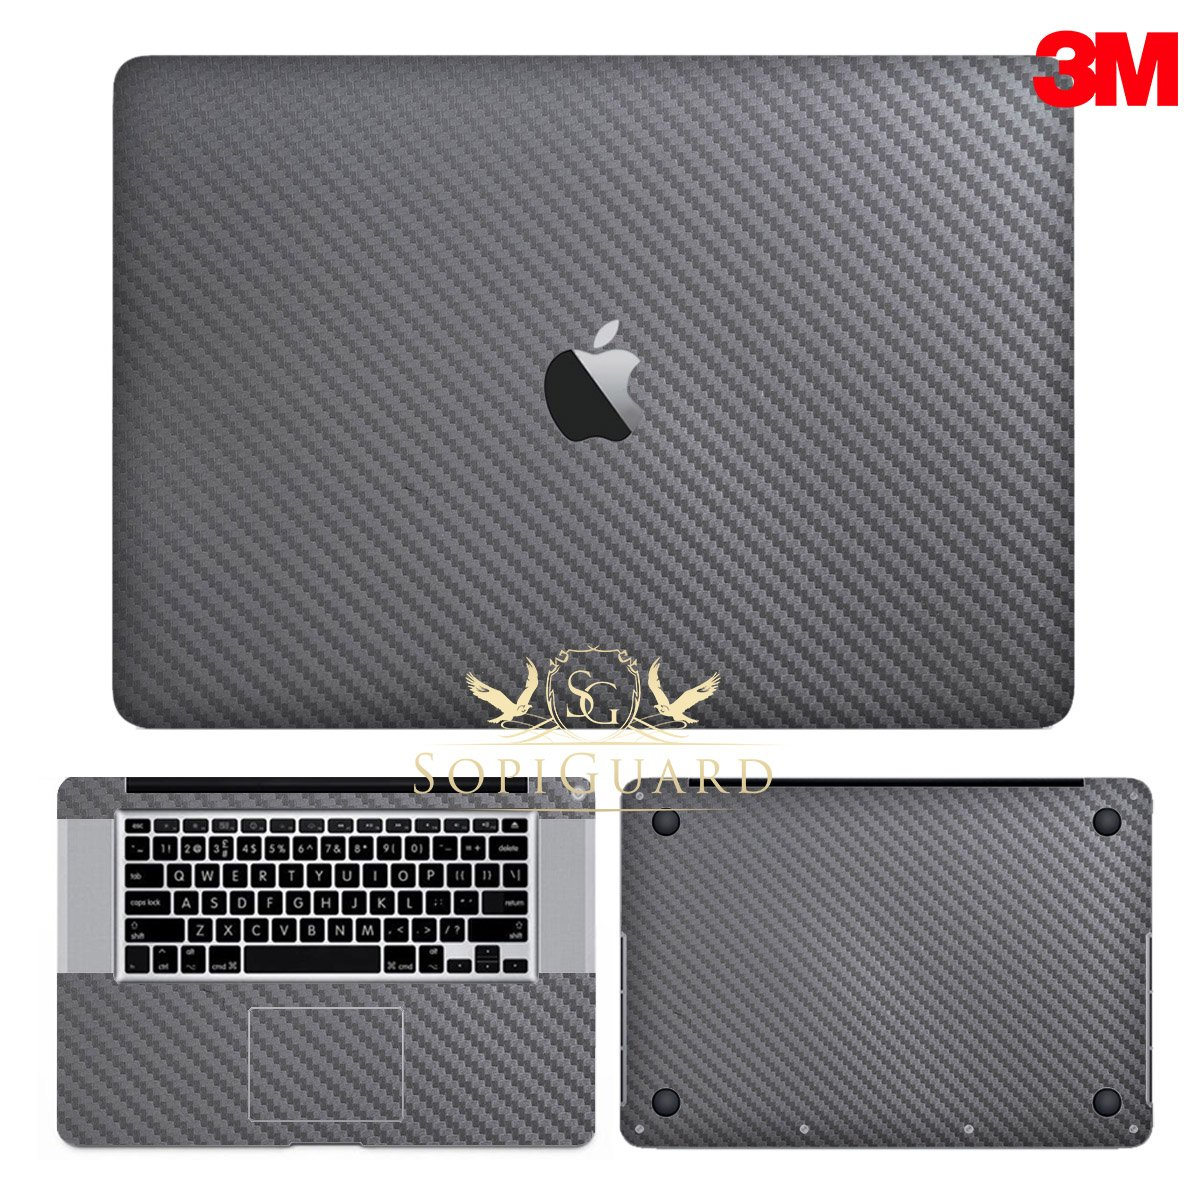 SopiGuard 3M Gunmetal Gray Carbon Fiber Precision Edge-to-Edge Coverage Vinyl Sticker Skin for Apple Macbook Pro 15 Non Retina (A1286)